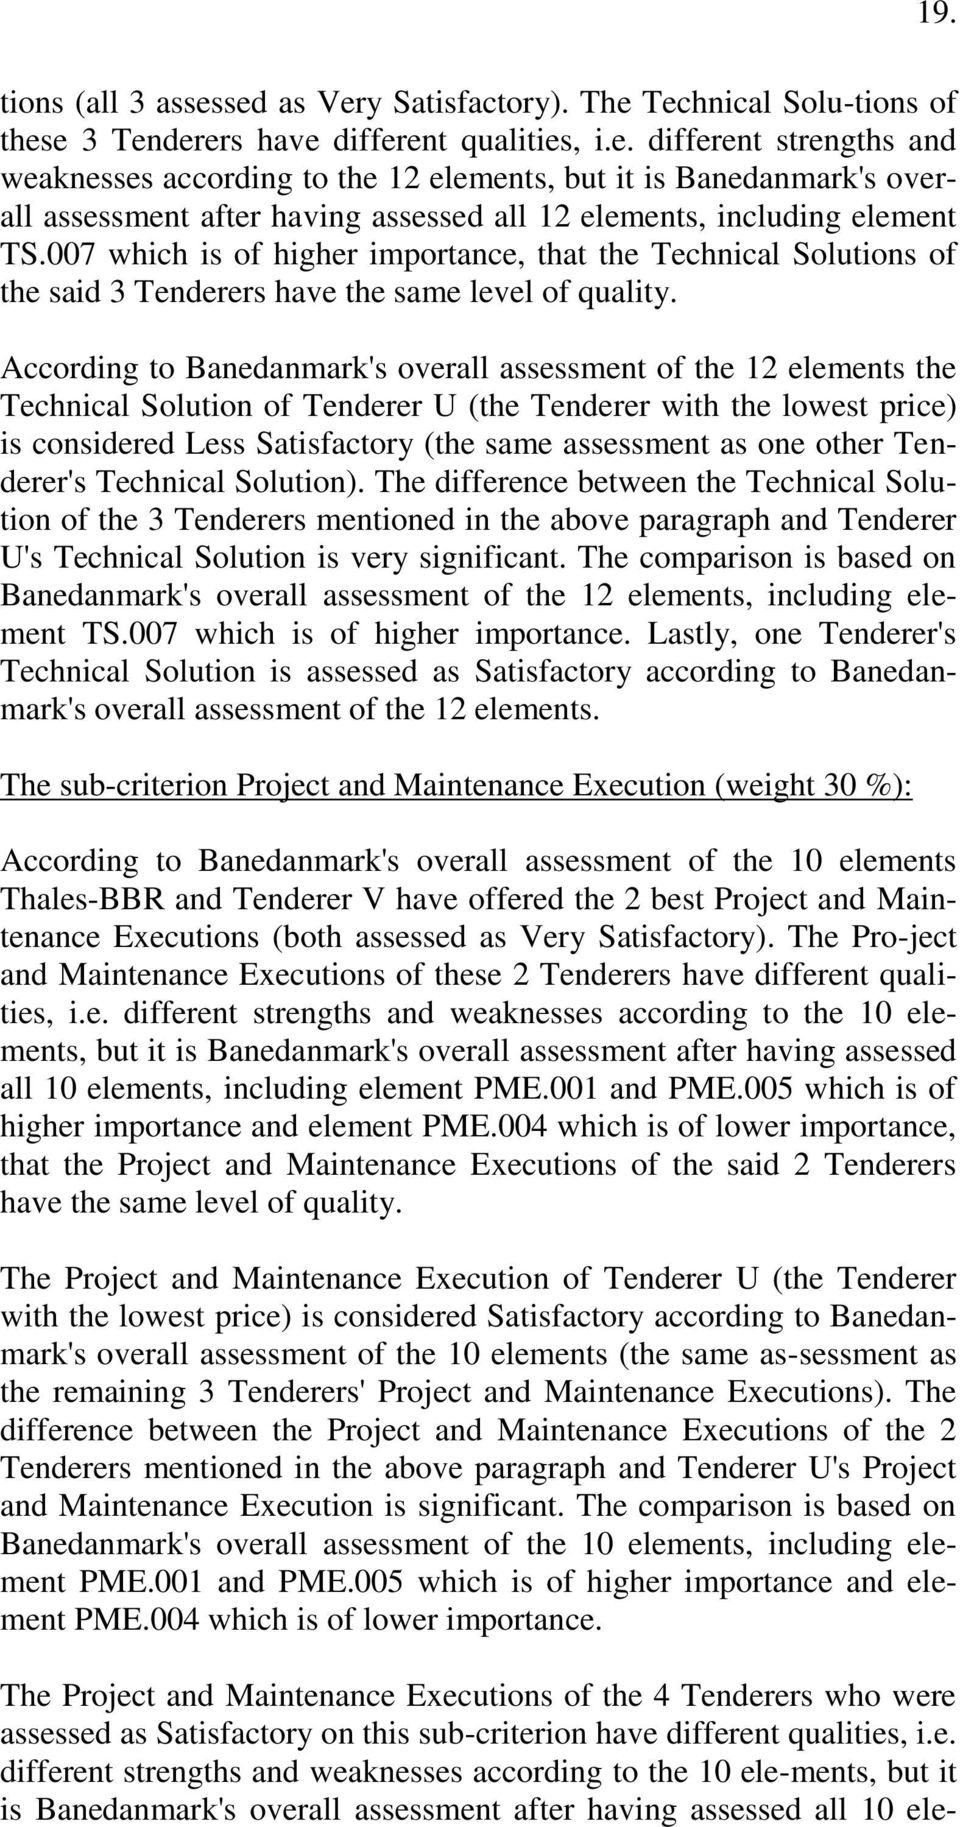 According to Banedanmark's overall assessment of the 12 elements the Technical Solution of Tenderer U (the Tenderer with the lowest price) is considered Less Satisfactory (the same assessment as one